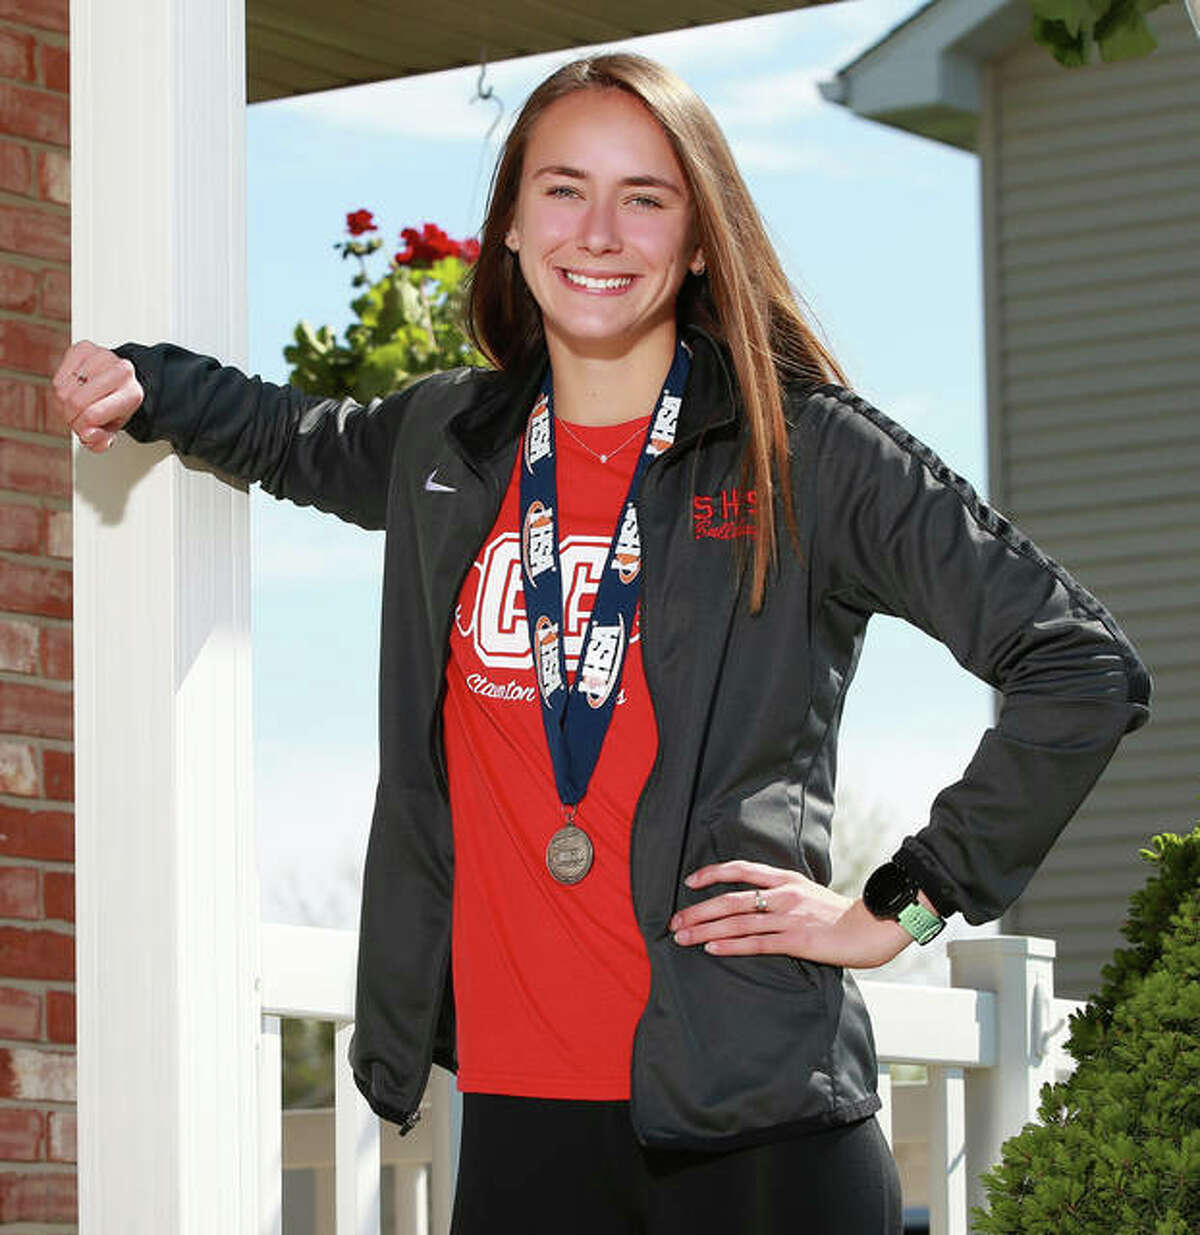 Staunton's Lydia Roller poses for her 2019 Telegraph Cross Country Runner of the Year portrait last summer at her home in Staunton.